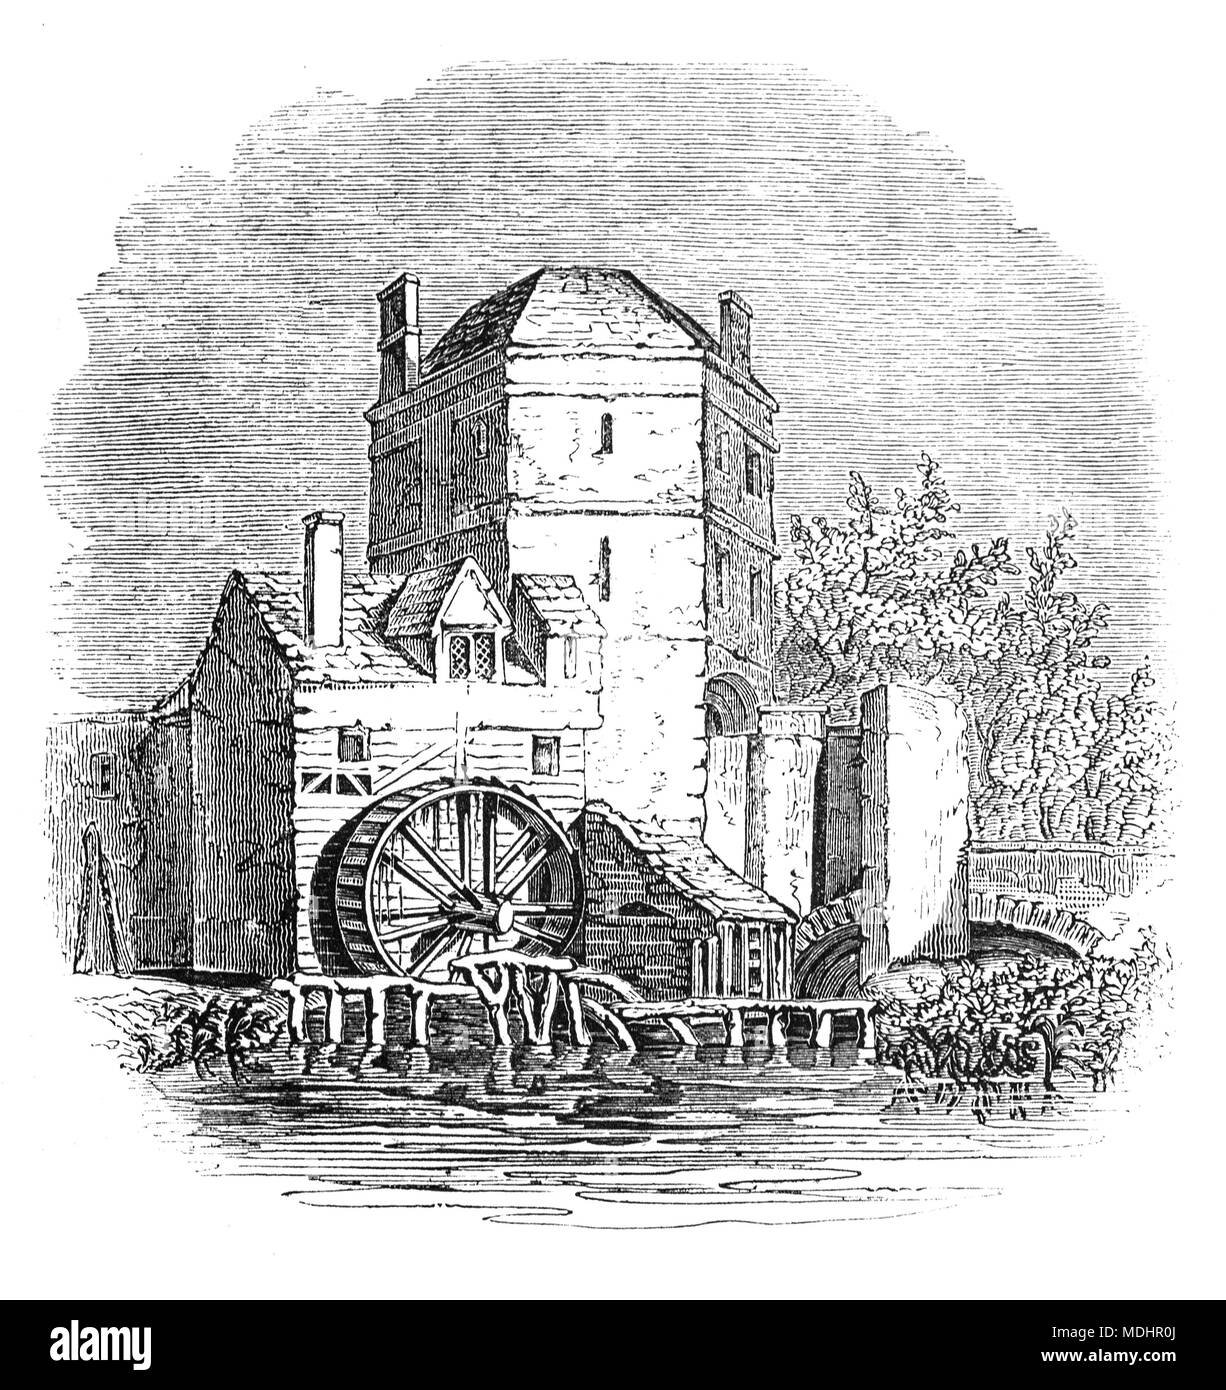 The Tower at the side of the Folly Bridge over the River Thames, Oxford, Oxfordshire, England, in which the 13th century  alchemist Roger Bacon is said to have lived and worked. 'Friar Bacon's Study' stood across the north end of the bridge until 1779, when it was removed to widen the road. - Stock Image